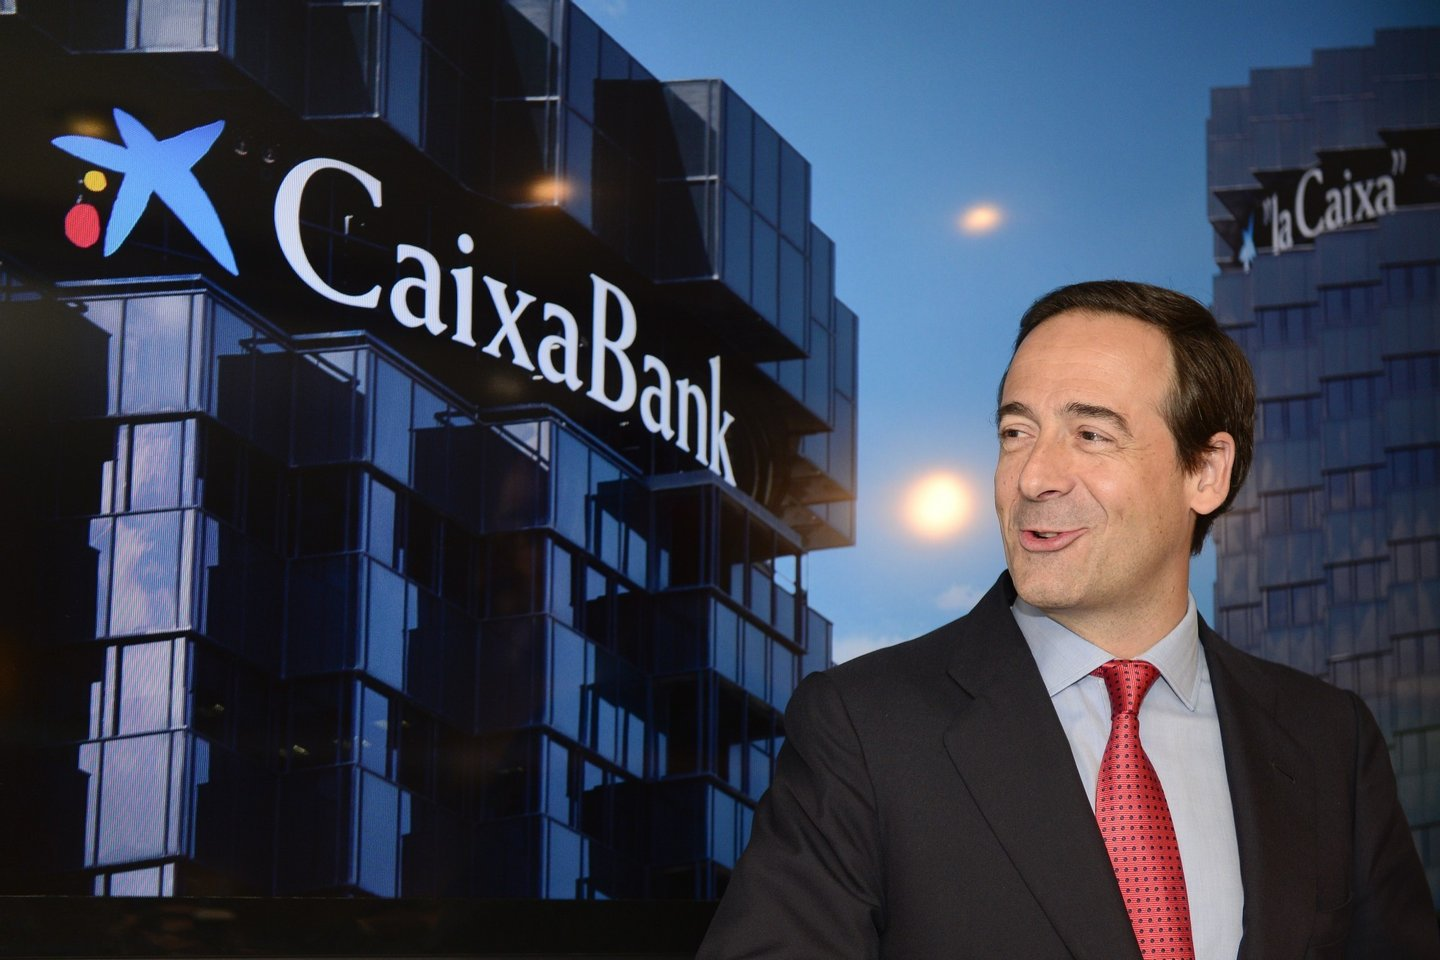 Spanish bank CaixaBank's new Chief Executive Officer Gonzalo Gortazar poses prior to a press conference announcing the 2014 first semester results in Barcelona on July 25, 2014. AFP PHOTO/ JOSEP LAGO (Photo credit should read JOSEP LAGO/AFP/Getty Images)